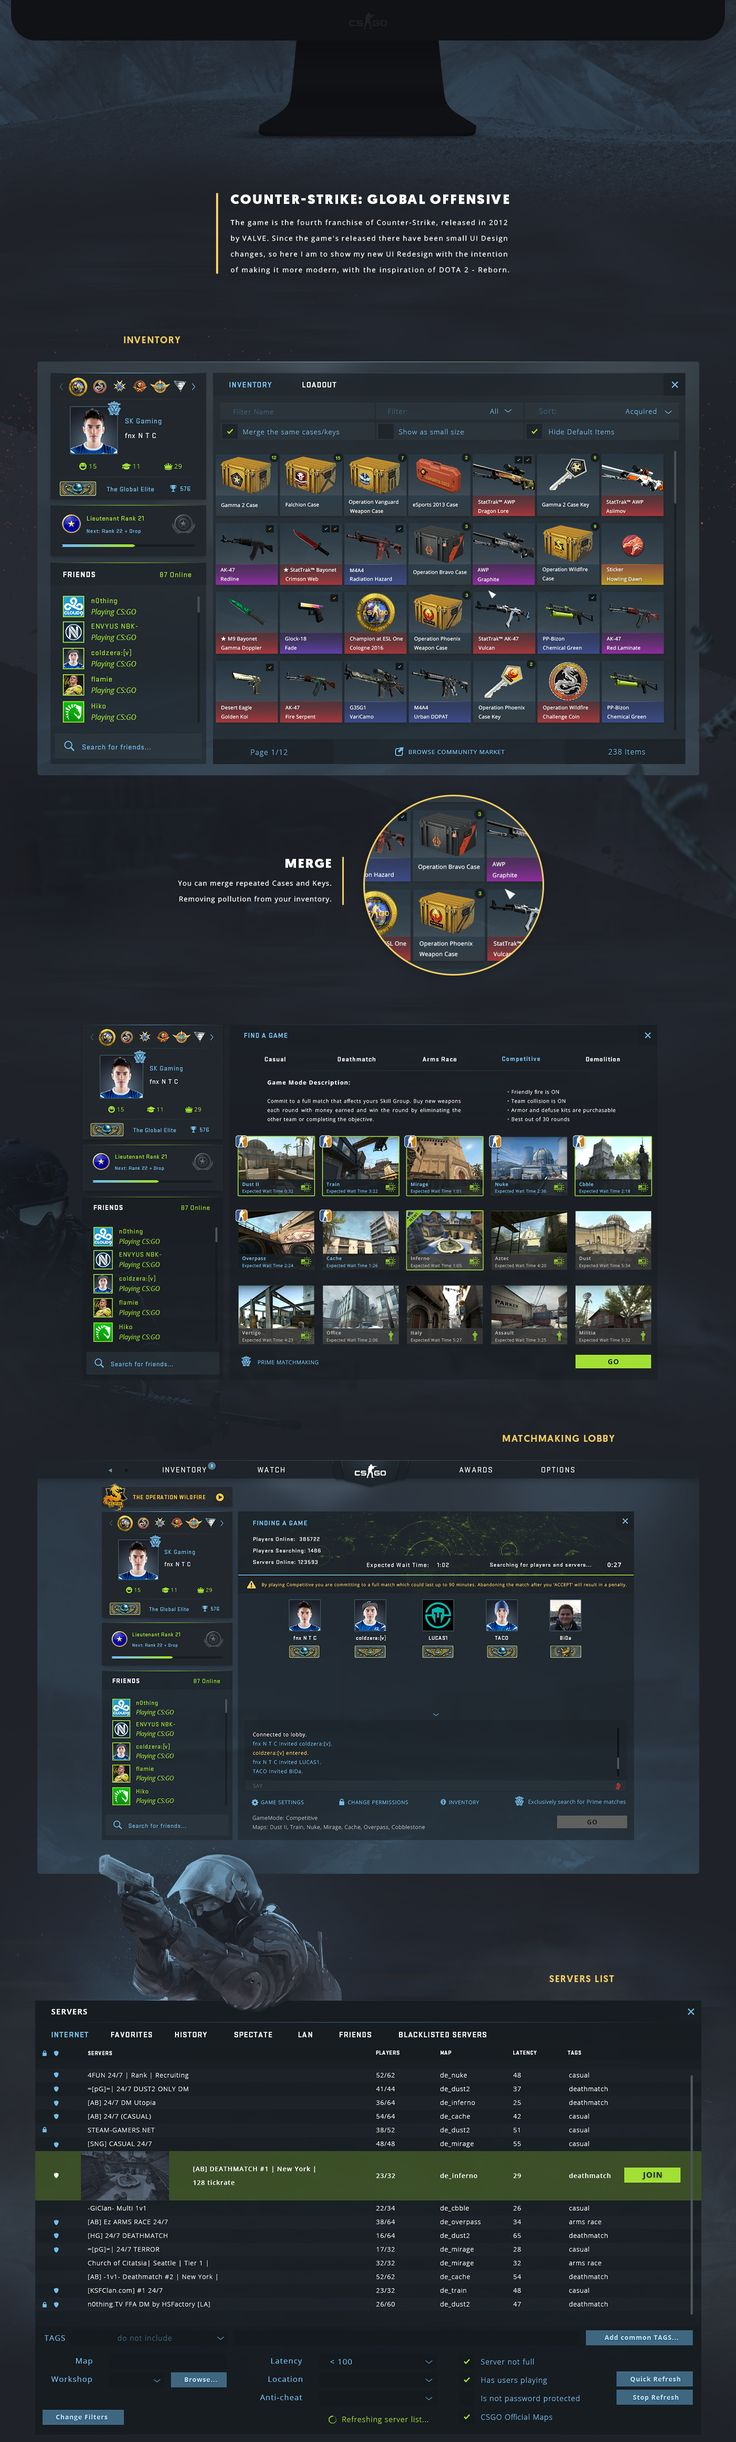 The game is the fourth franchise of Counter-Strike, released in 2012 by VALVE. Since the game's released there have been small UI Design changes, so here I am to show my new UI Redesign with the intention of making it more modern, with the inspiration of …